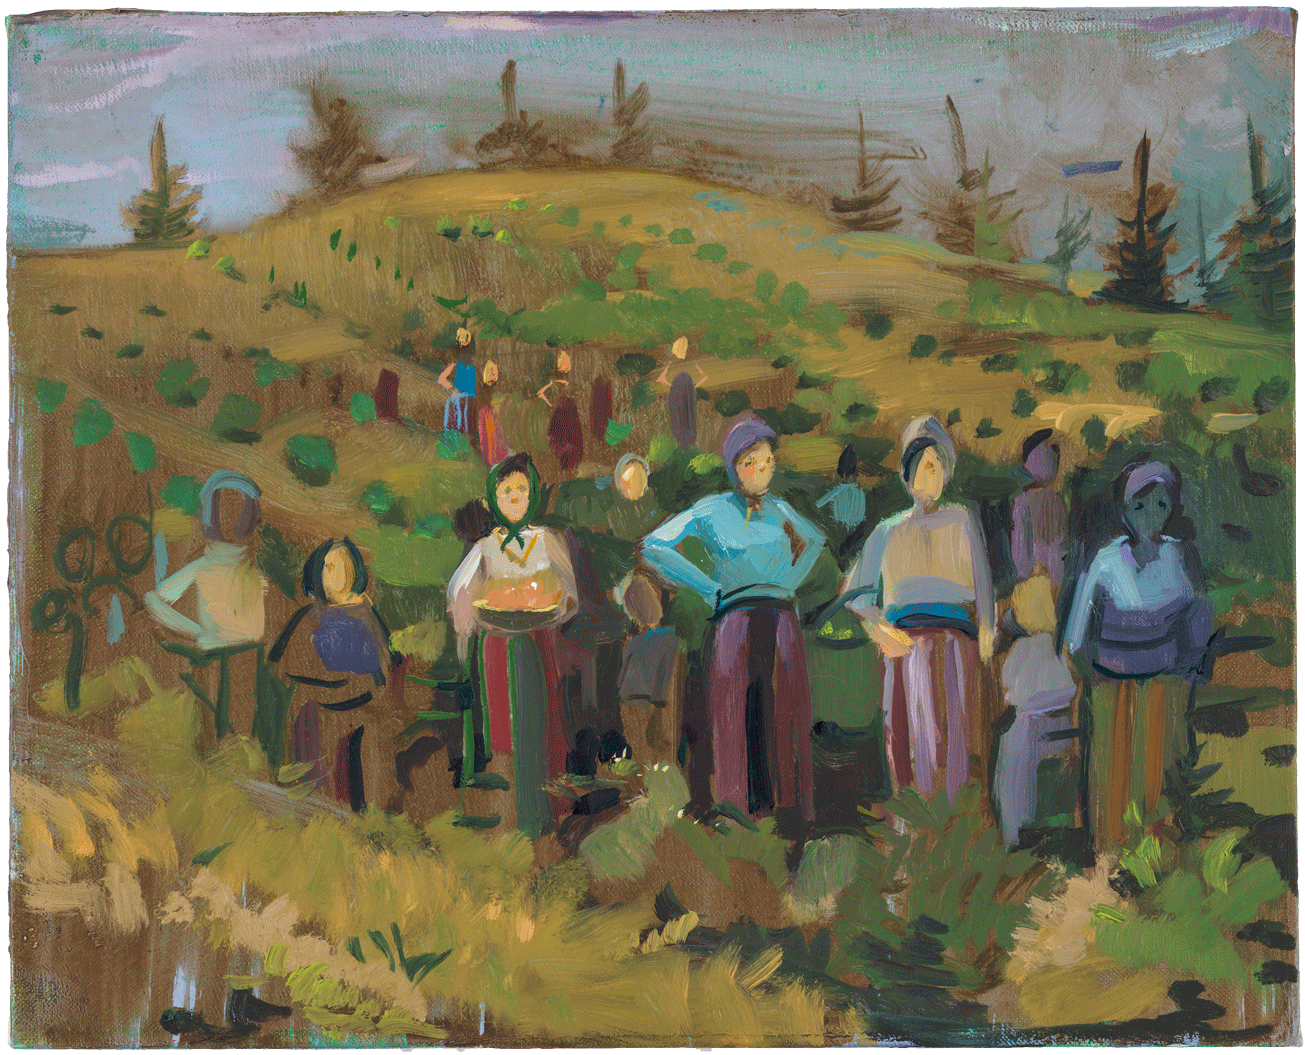 Lisa Yuskavage, Peasants, 2015, oil on linen, 8 1/8 x 10 1/8 inches (Private Collection, image courtesy of David Zwirner Gallery)